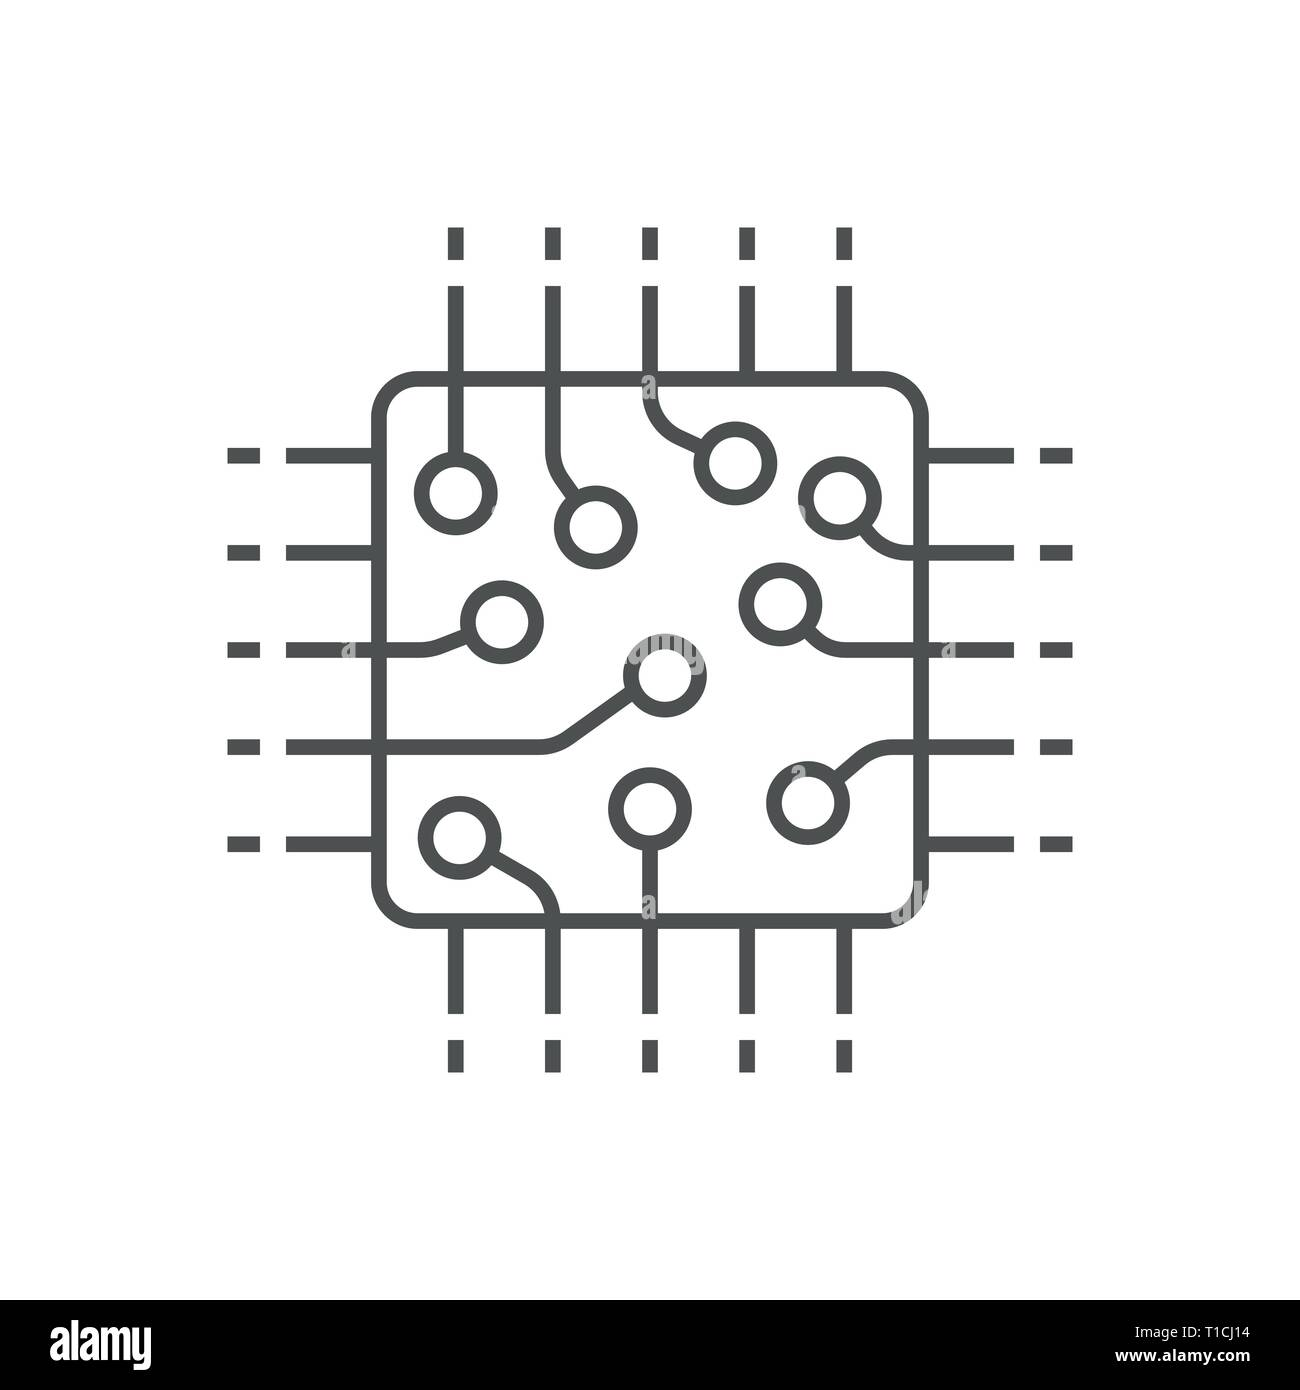 Processor icon, CPU, GPU, chip. Technology computer chip icon in line style. Editable Stroke. EPS 10 - Stock Image